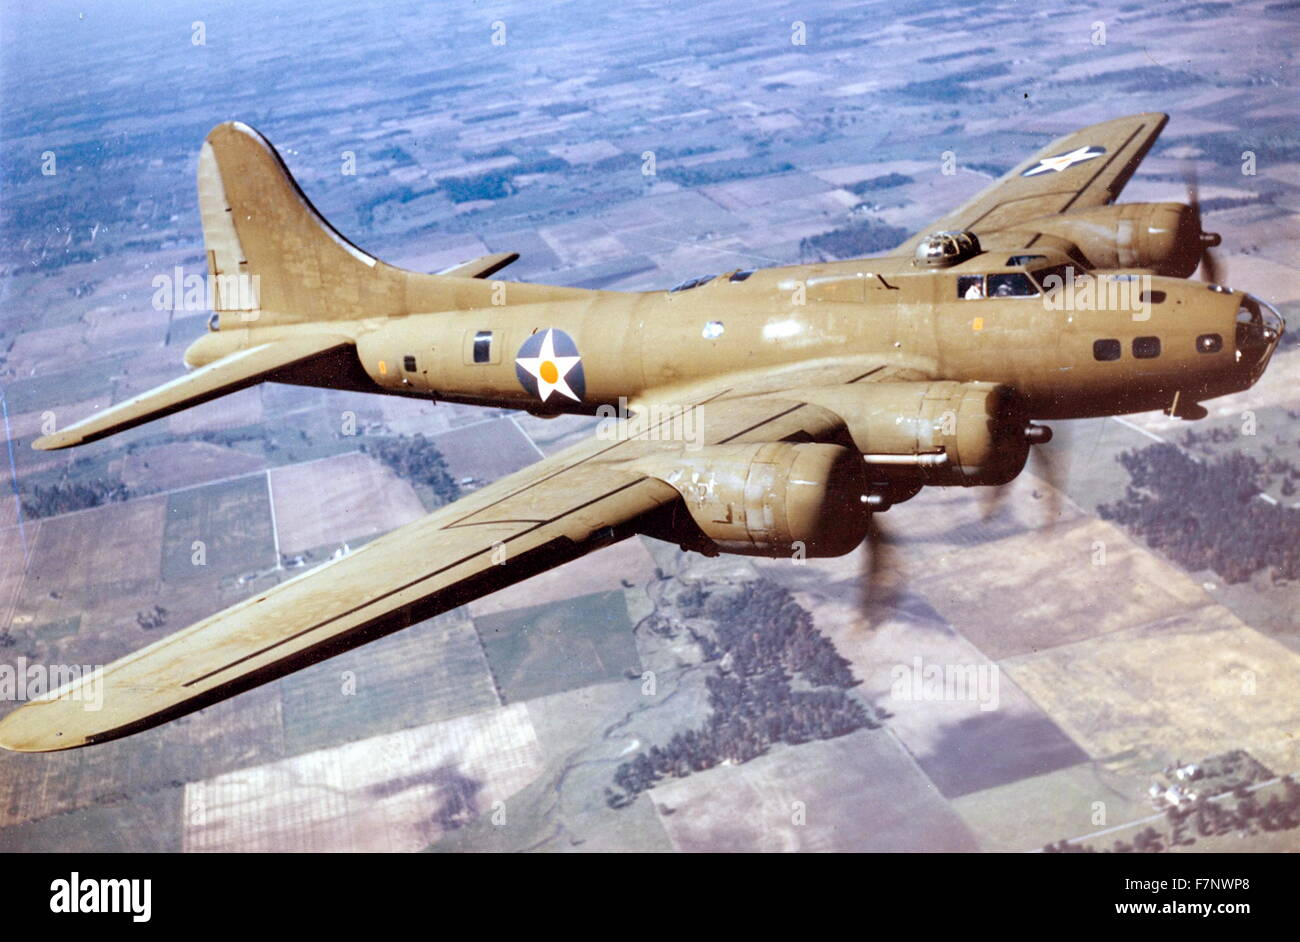 World War two, B-17E Flying Fortress bomber aircraft Stock Photo